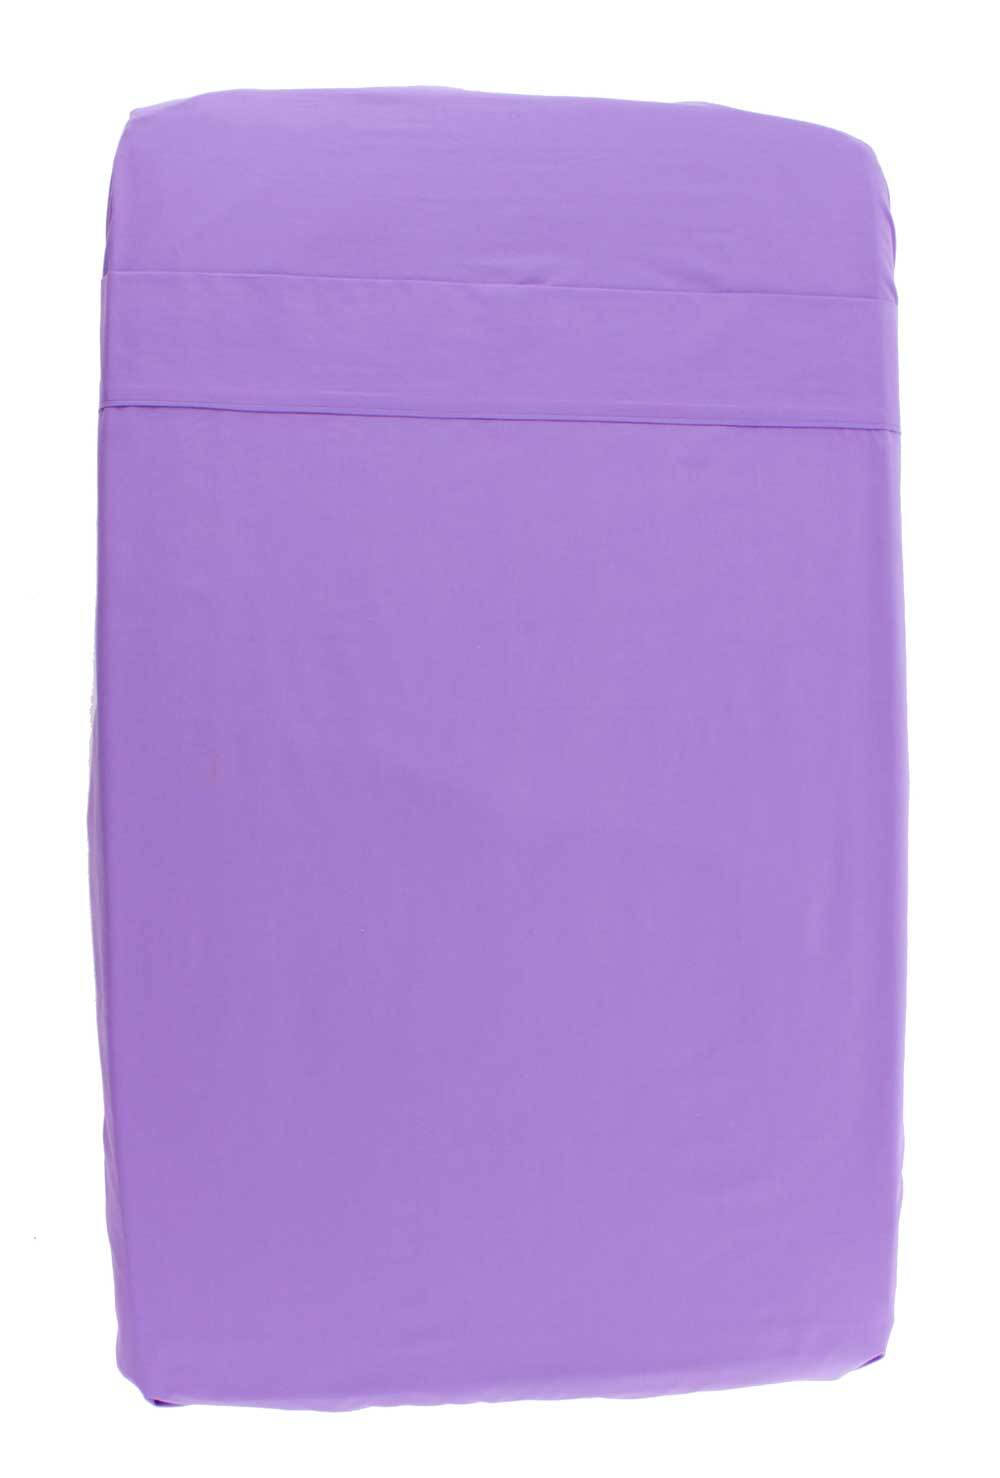 Studio Play Combination Cot Sheet Set - Purple